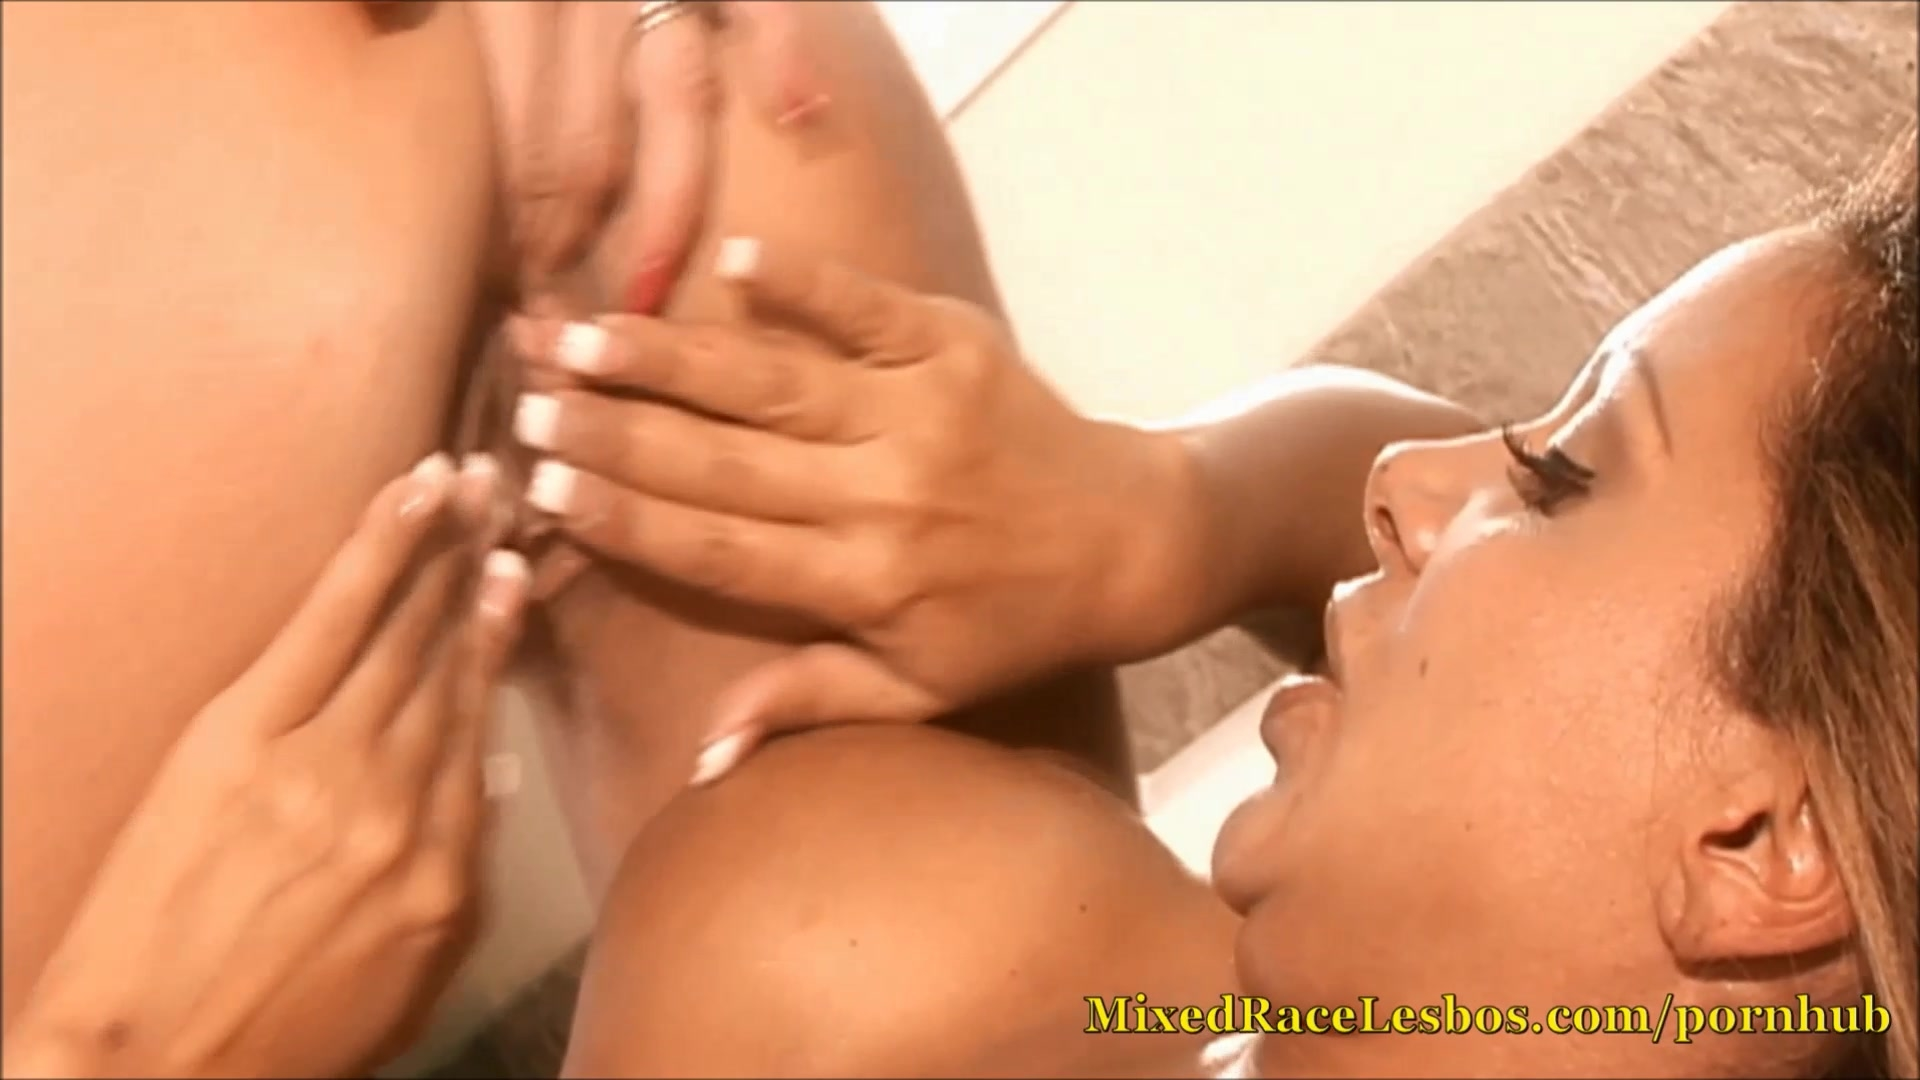 Big Tit Lesbians Use Toys And Buttplugs In The Bath